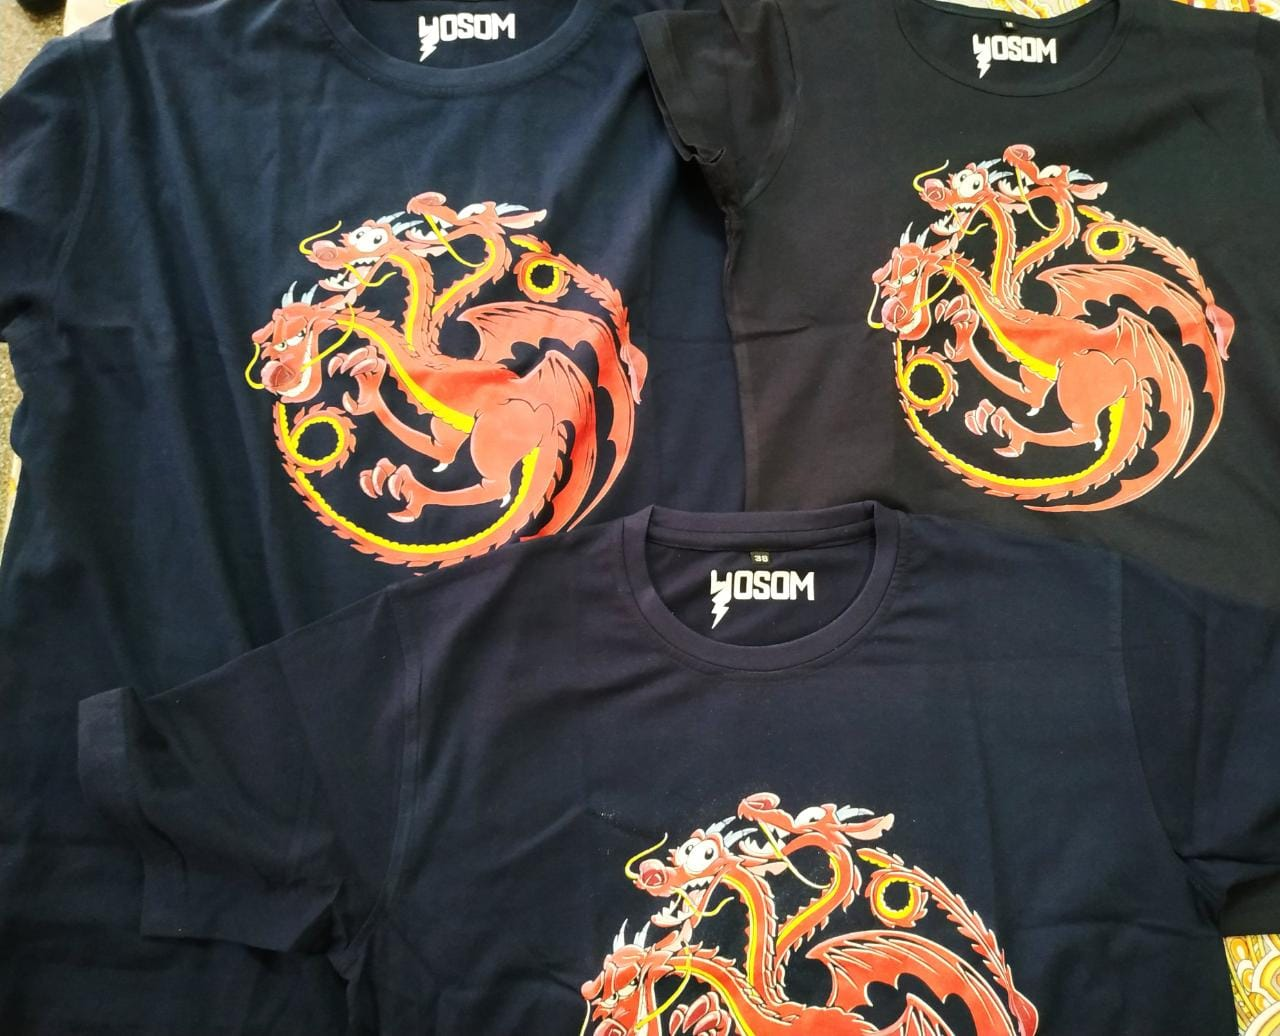 Poor and fake T-shirts sold on osom.in website